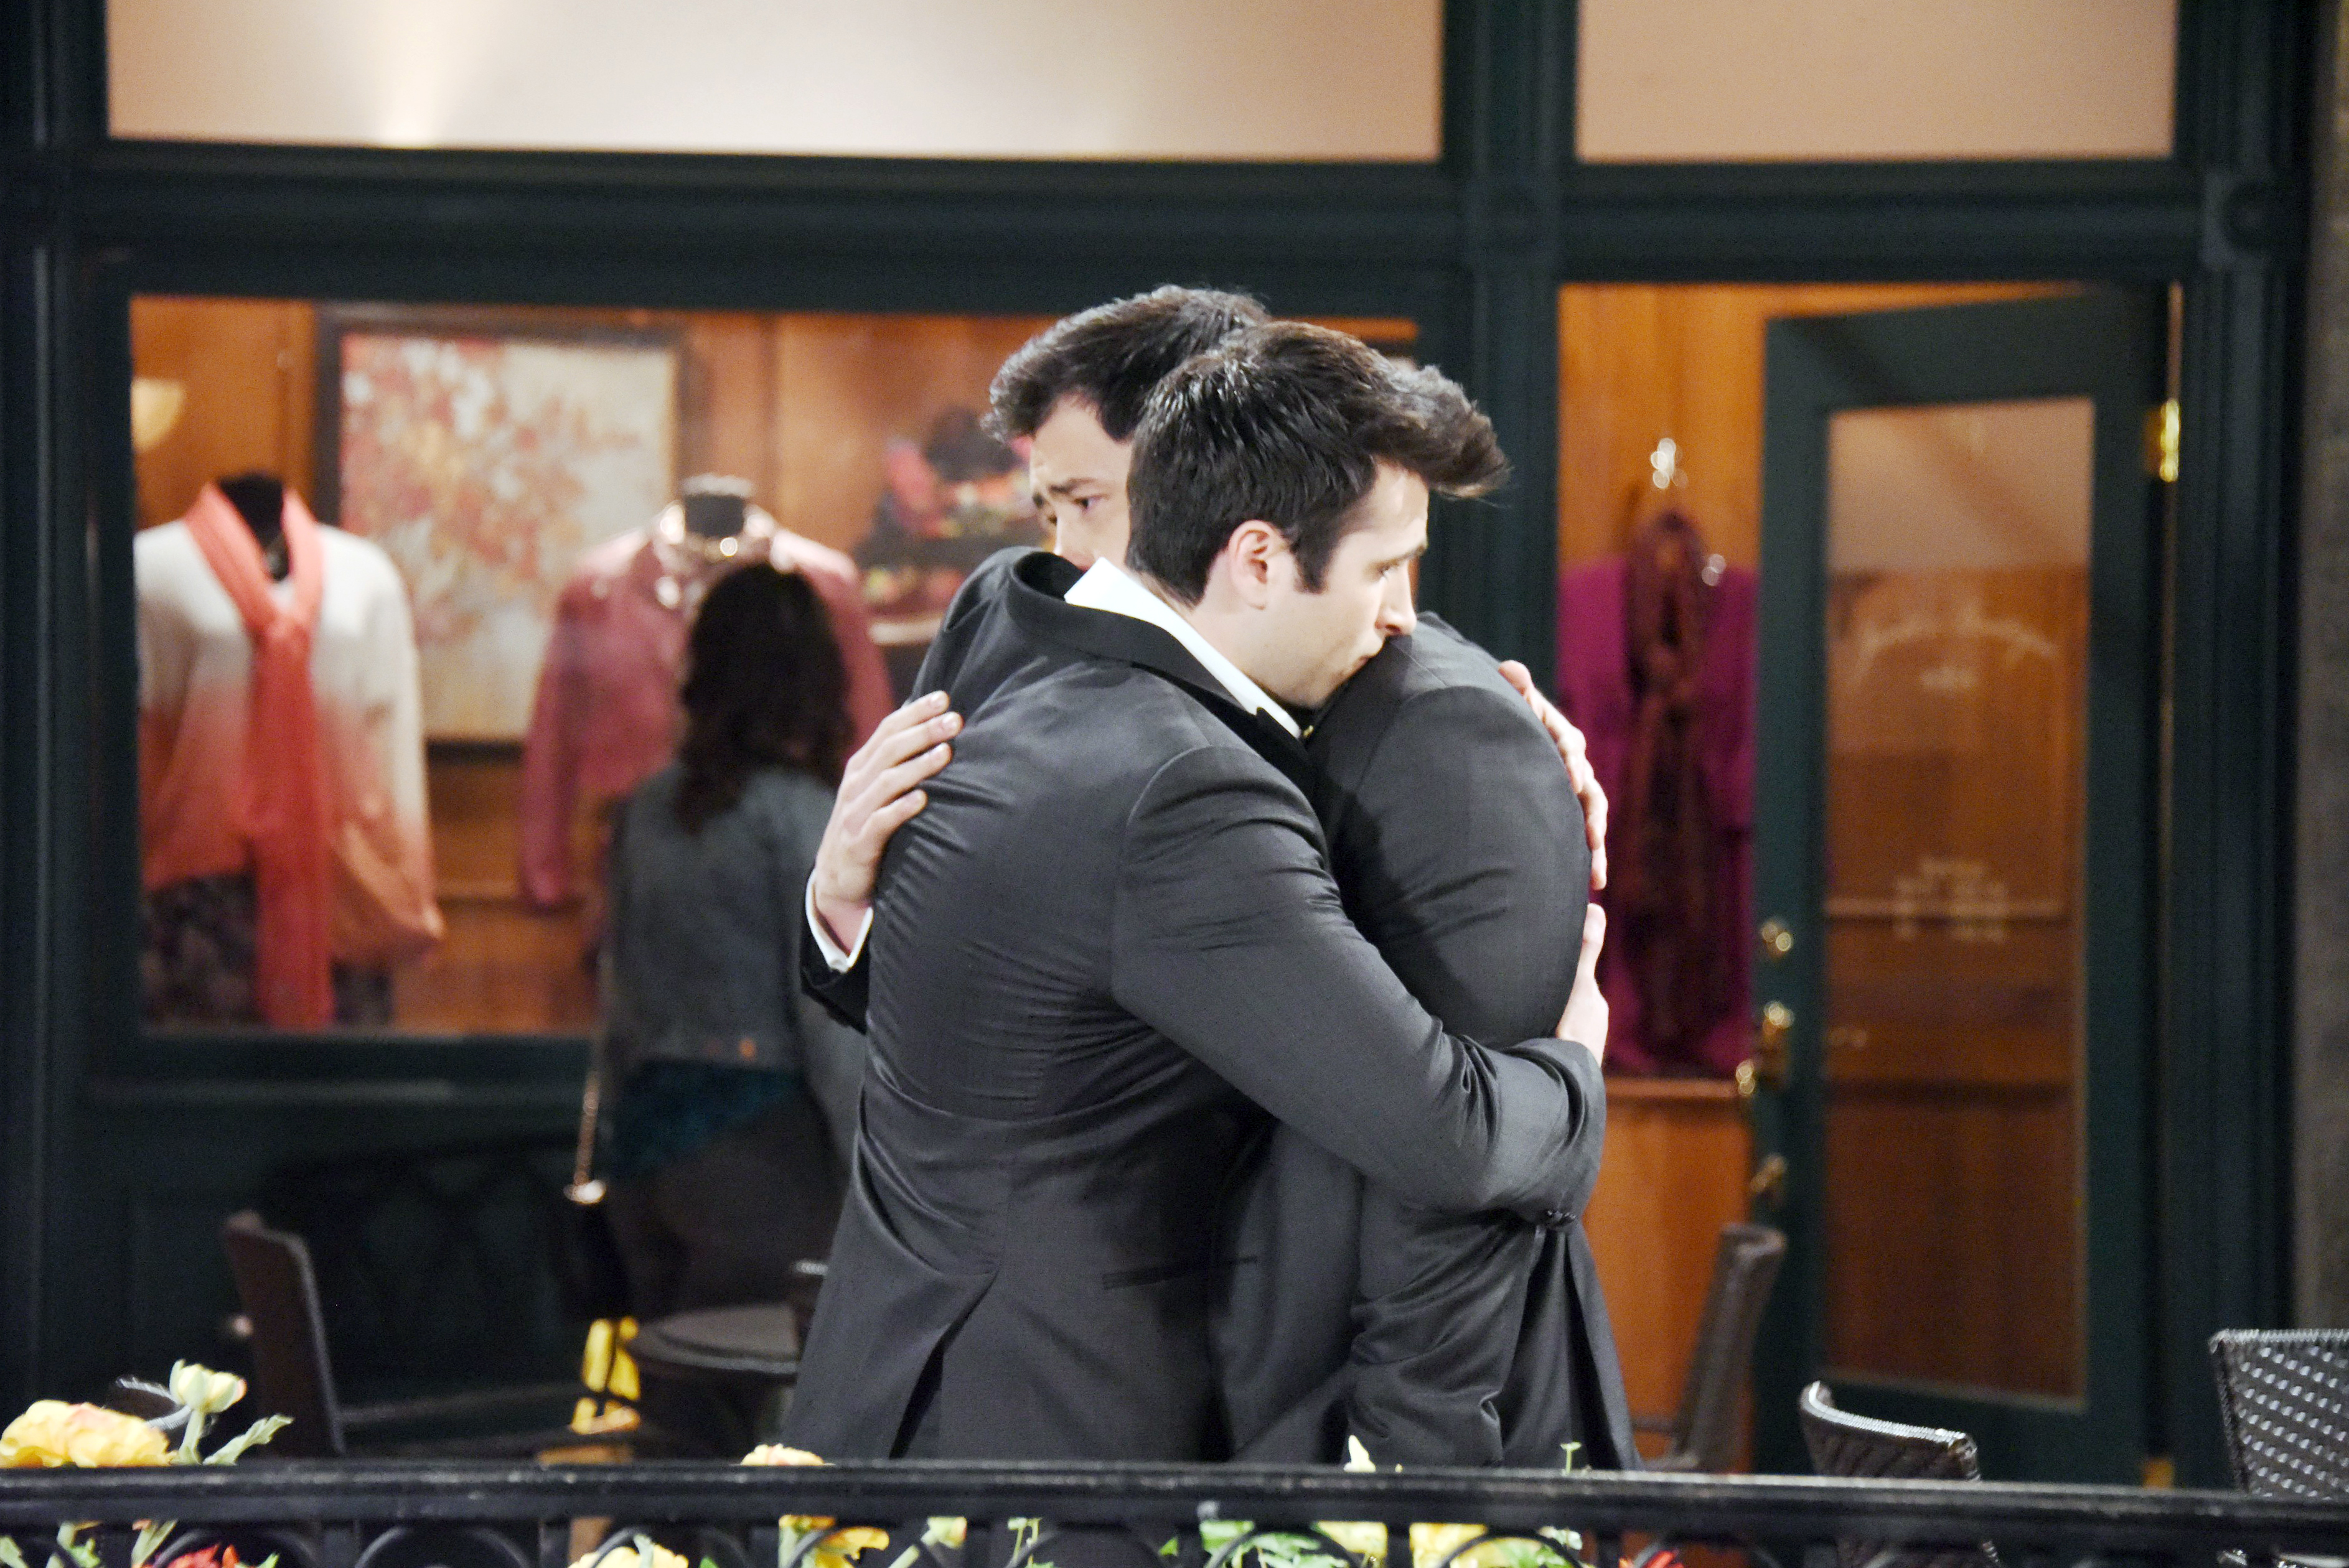 DOOL Spoilers: Paul and Sonny's relationship is strained as they deal with the Will situation.